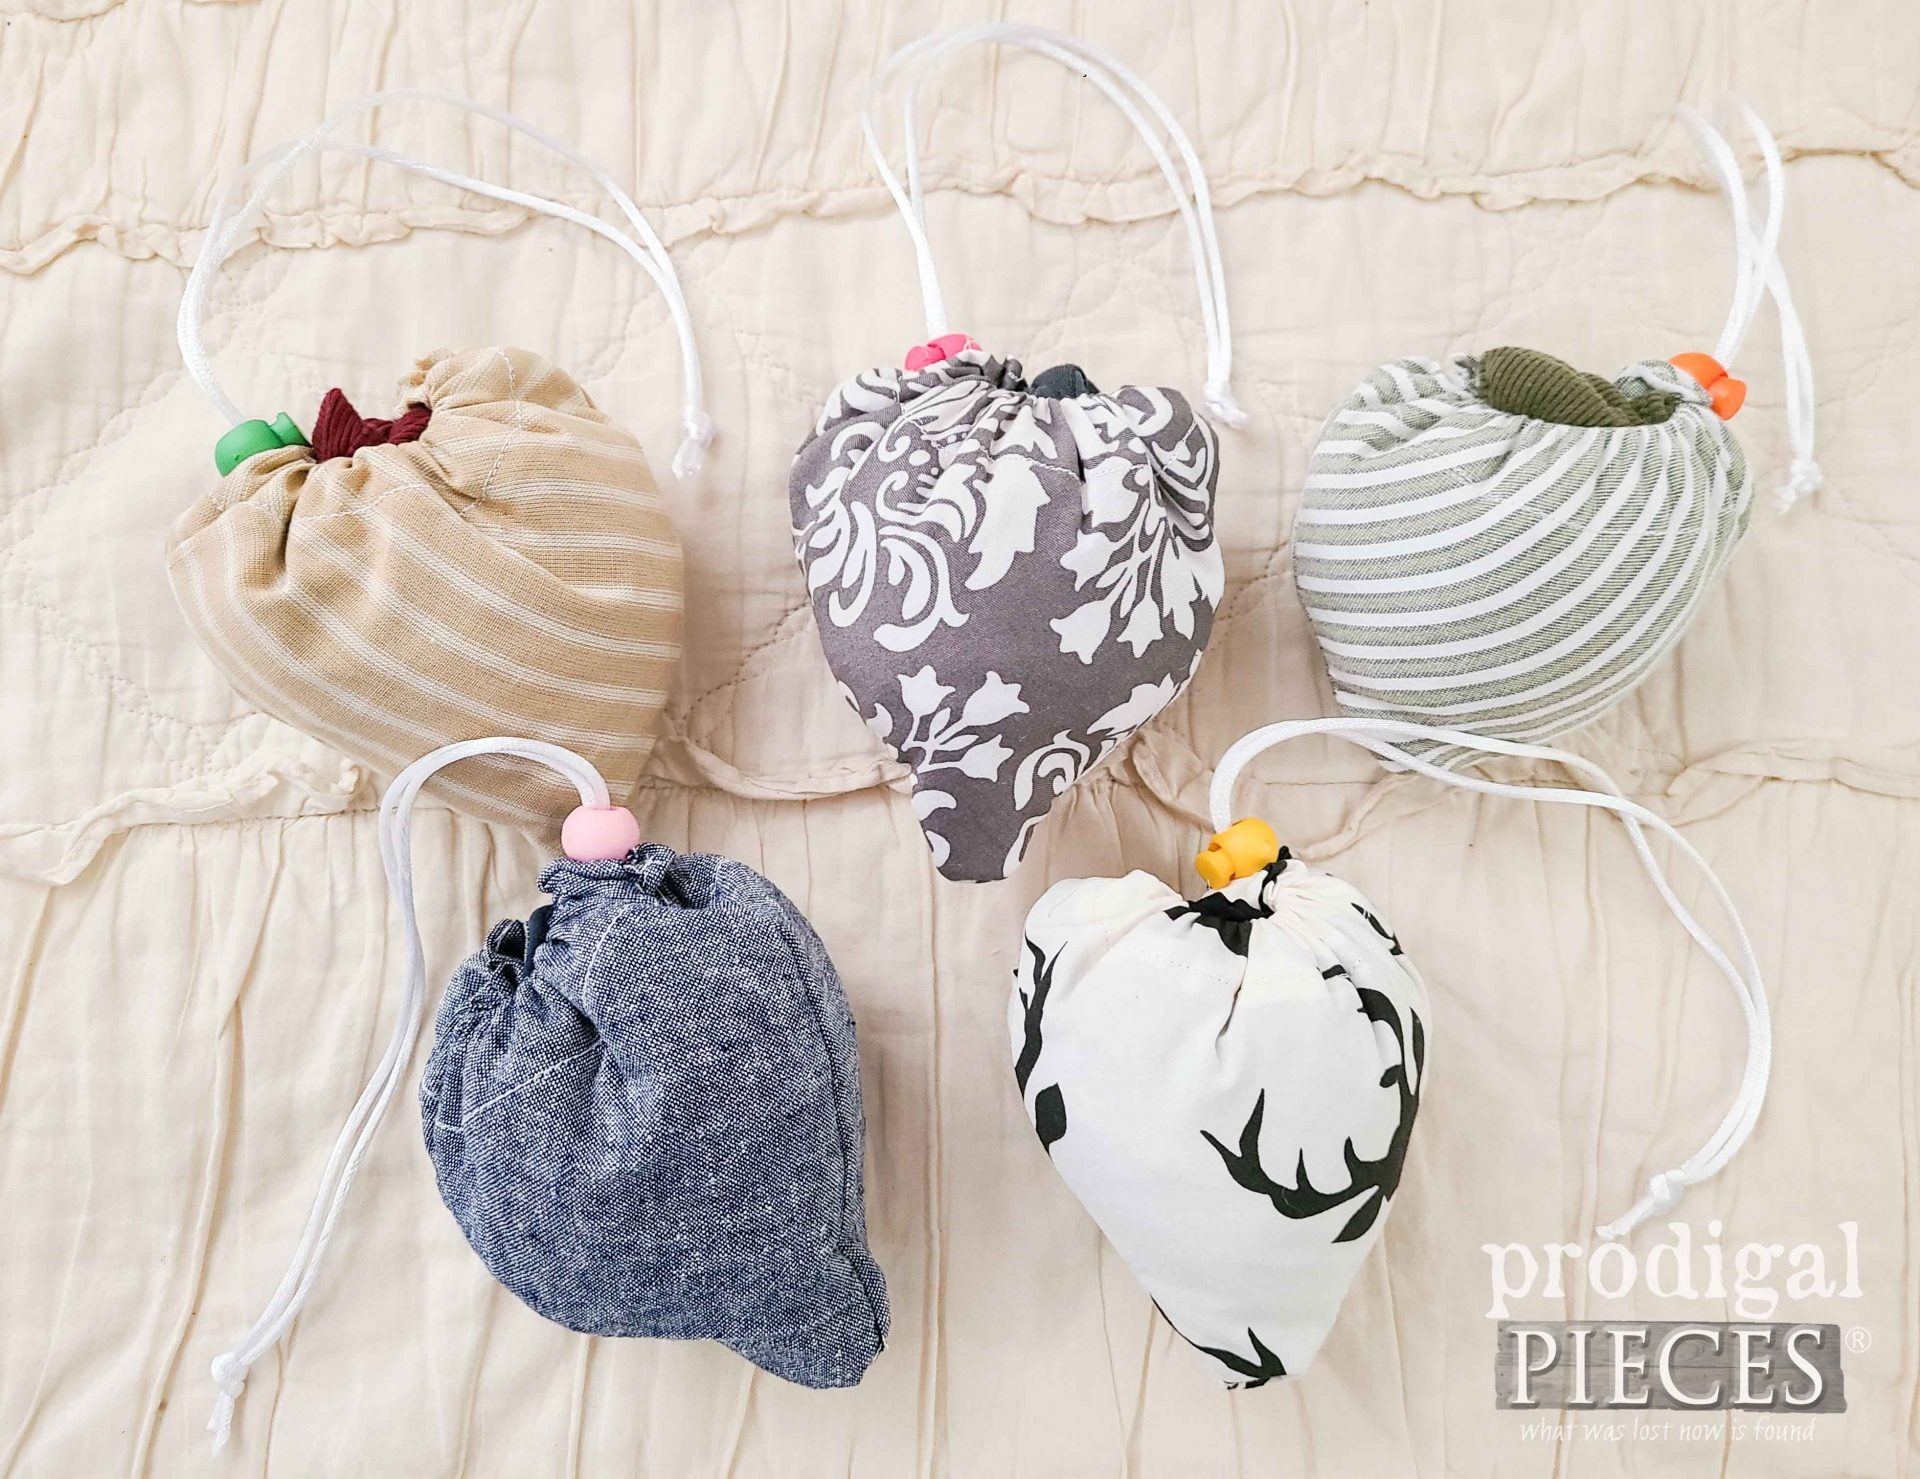 Folded Set of DIY Reusable Compact Folding Bags by Larissa of Prodigal Pieces   prodigalpieces.com #prodigalpieces #upcycle #diy #refashion #sewing #shopping